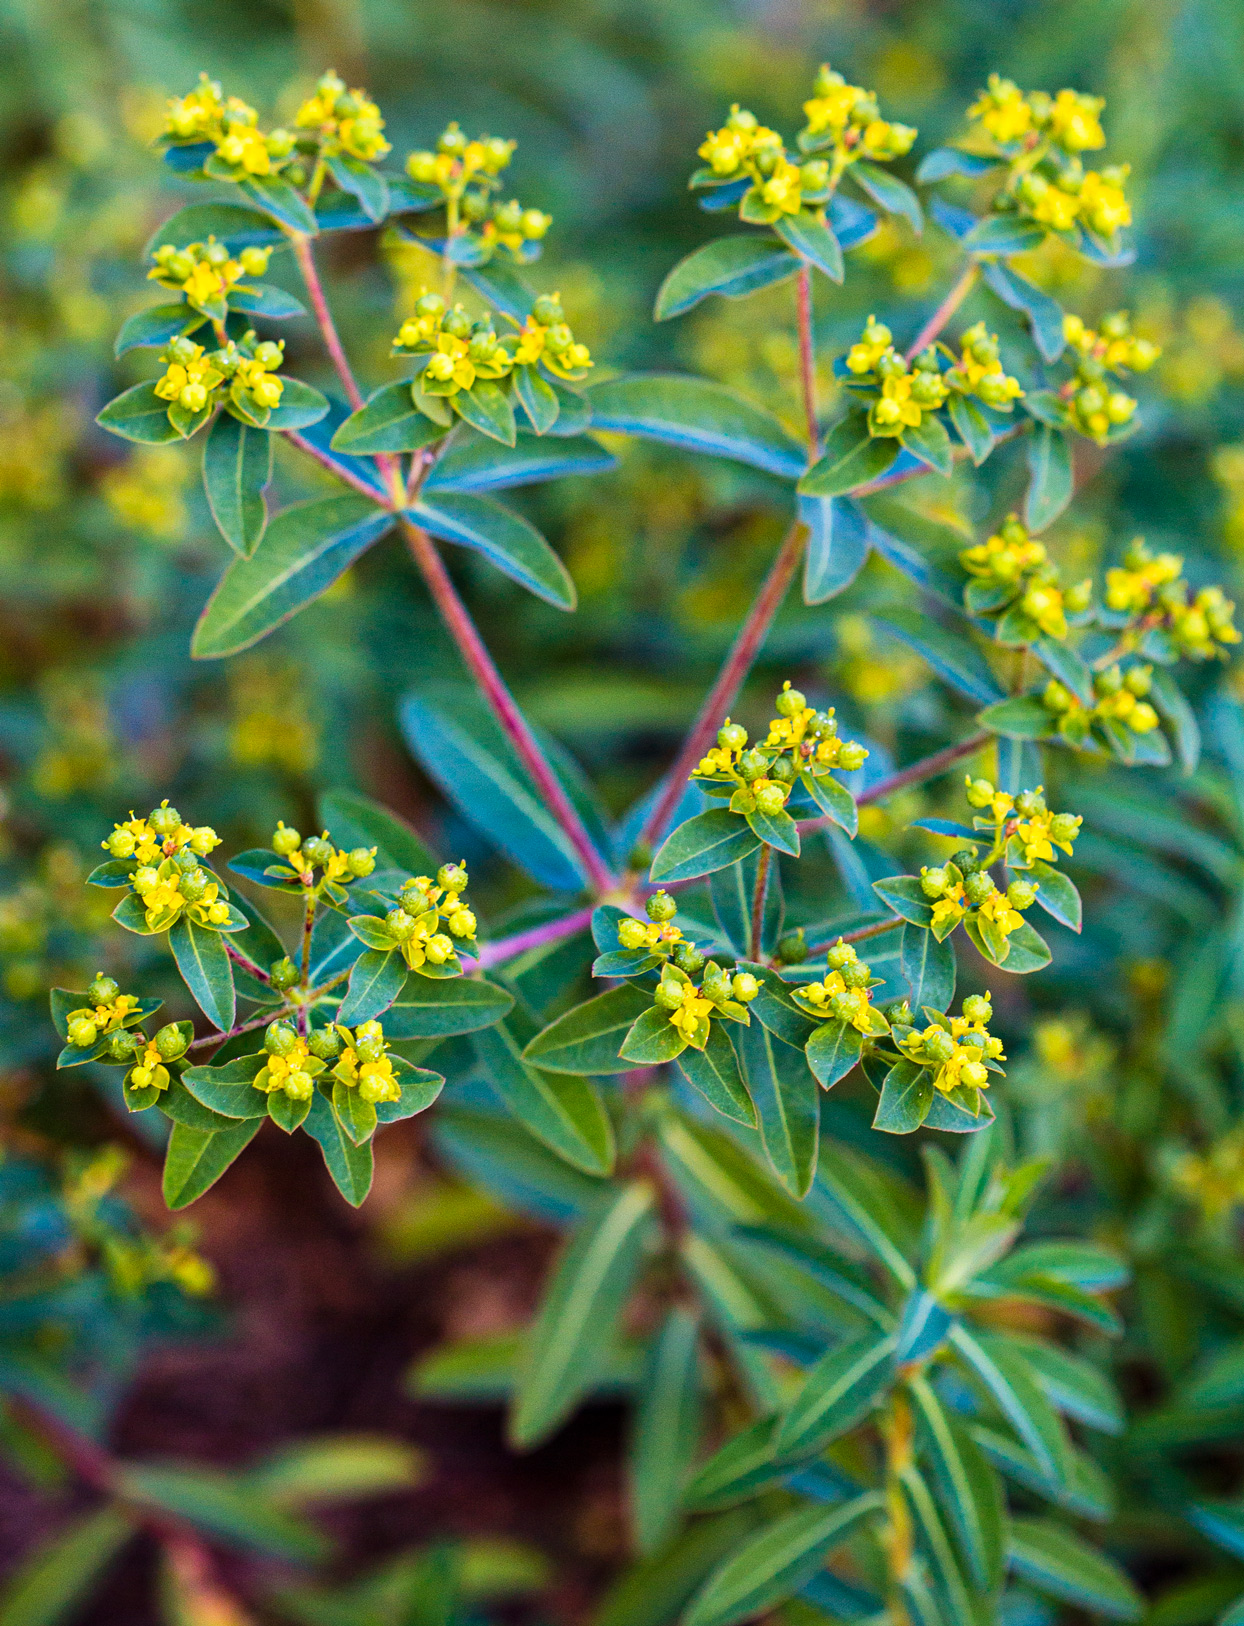 lime green leaves and small flowers of Euphorbia oblongata